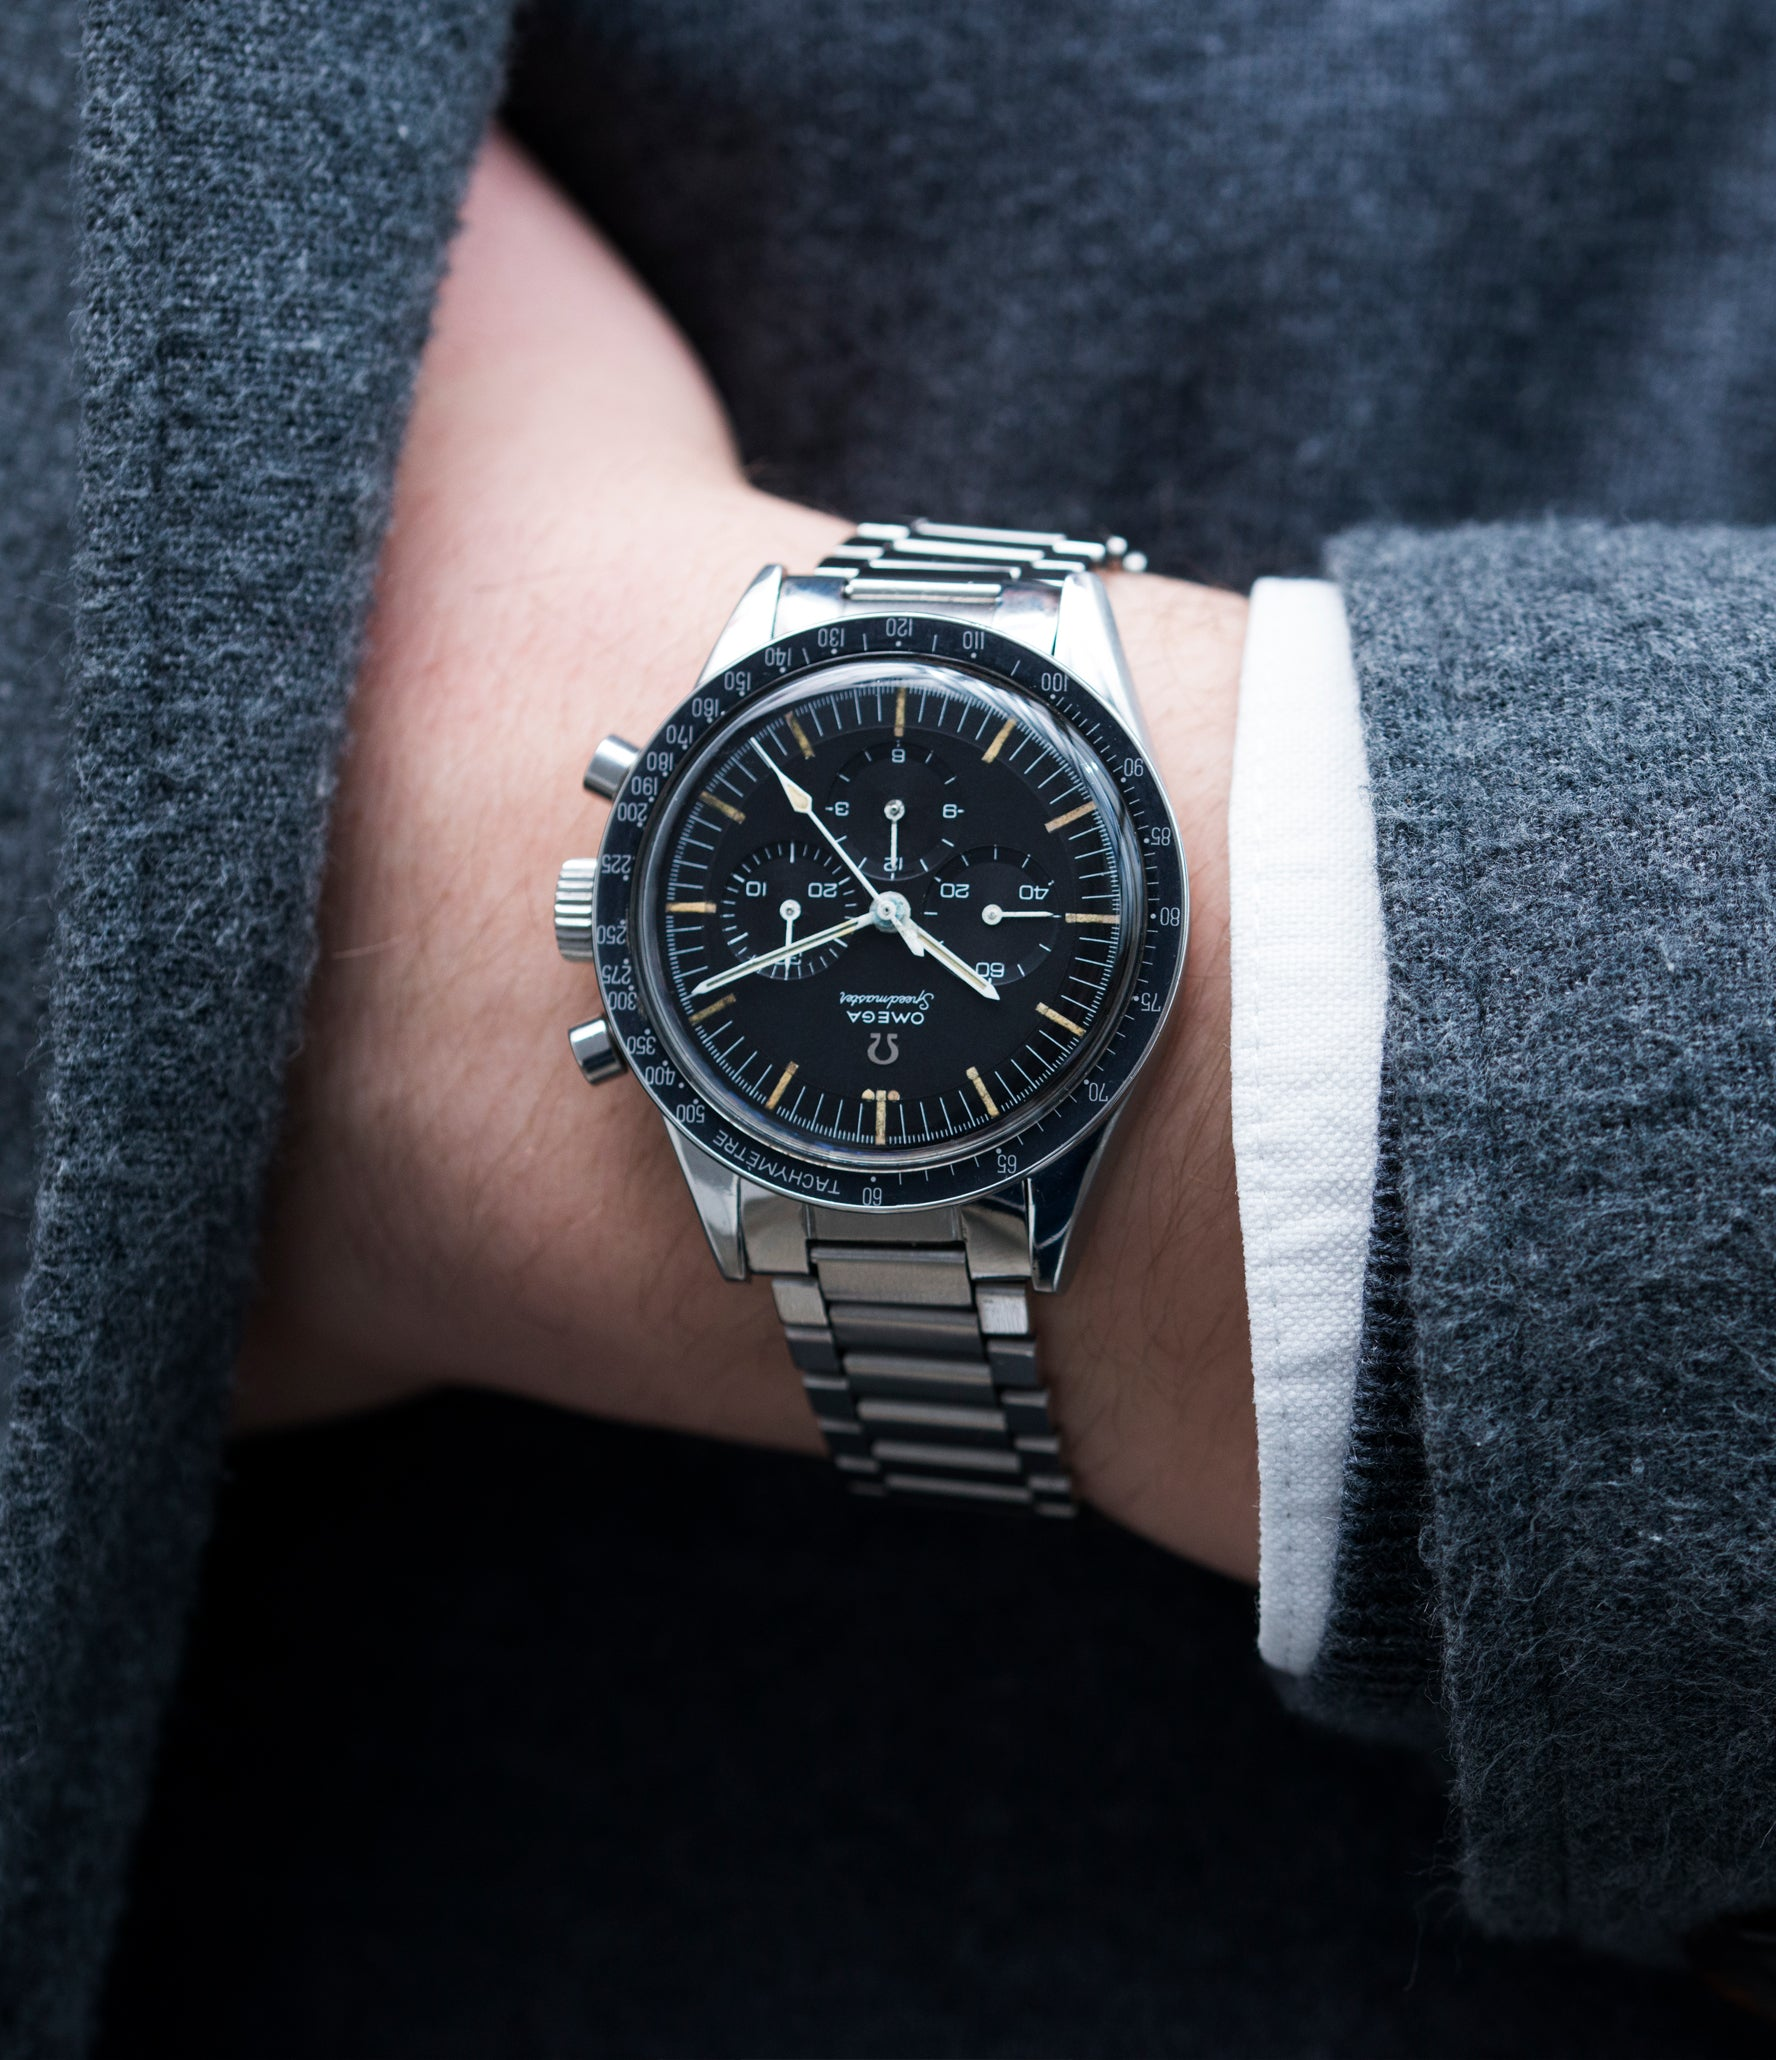 men's cool vintage watch Omega chronograph Speedmaster Pre-Professional Ed White 105.003 steel vintage chronograph 7912 flat-link bracelet for sale online at A Collected Man UK specialist of rare vintage watches